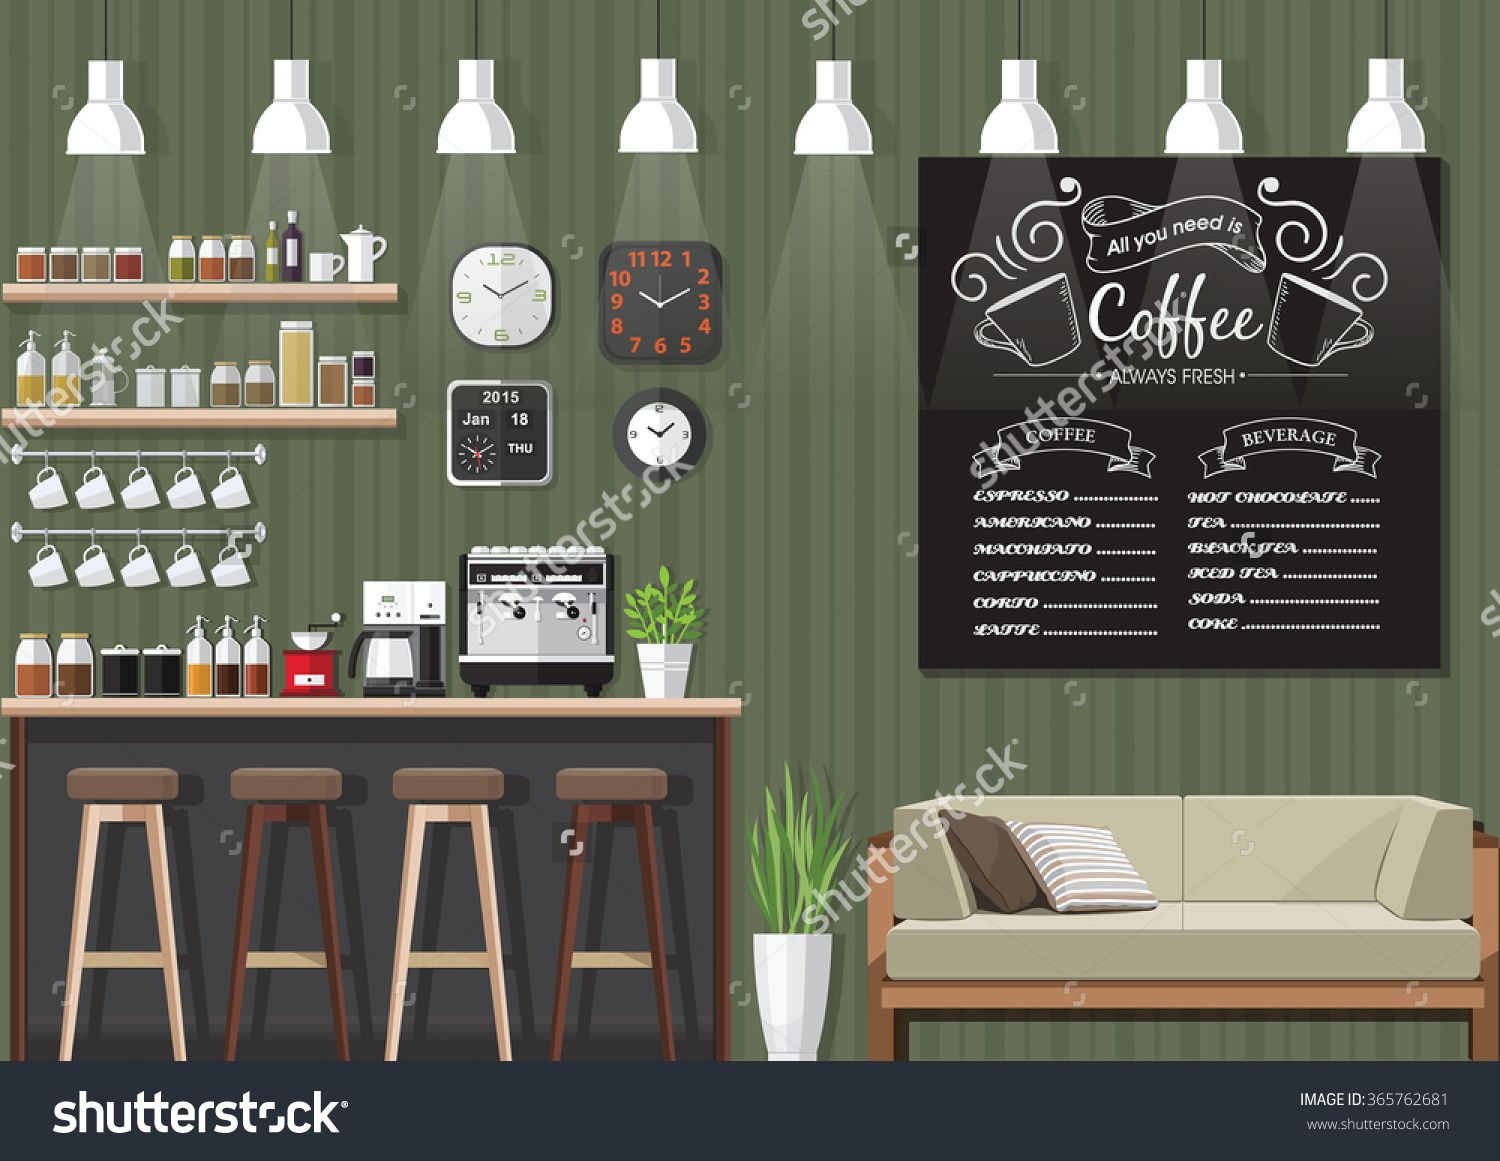 Interior wooden shelves free vector - Cafe Interior Stock Vectors And Vector Clip Art From Shutterstock The World S Largest Royalty Free Image Video And Music Marketplace